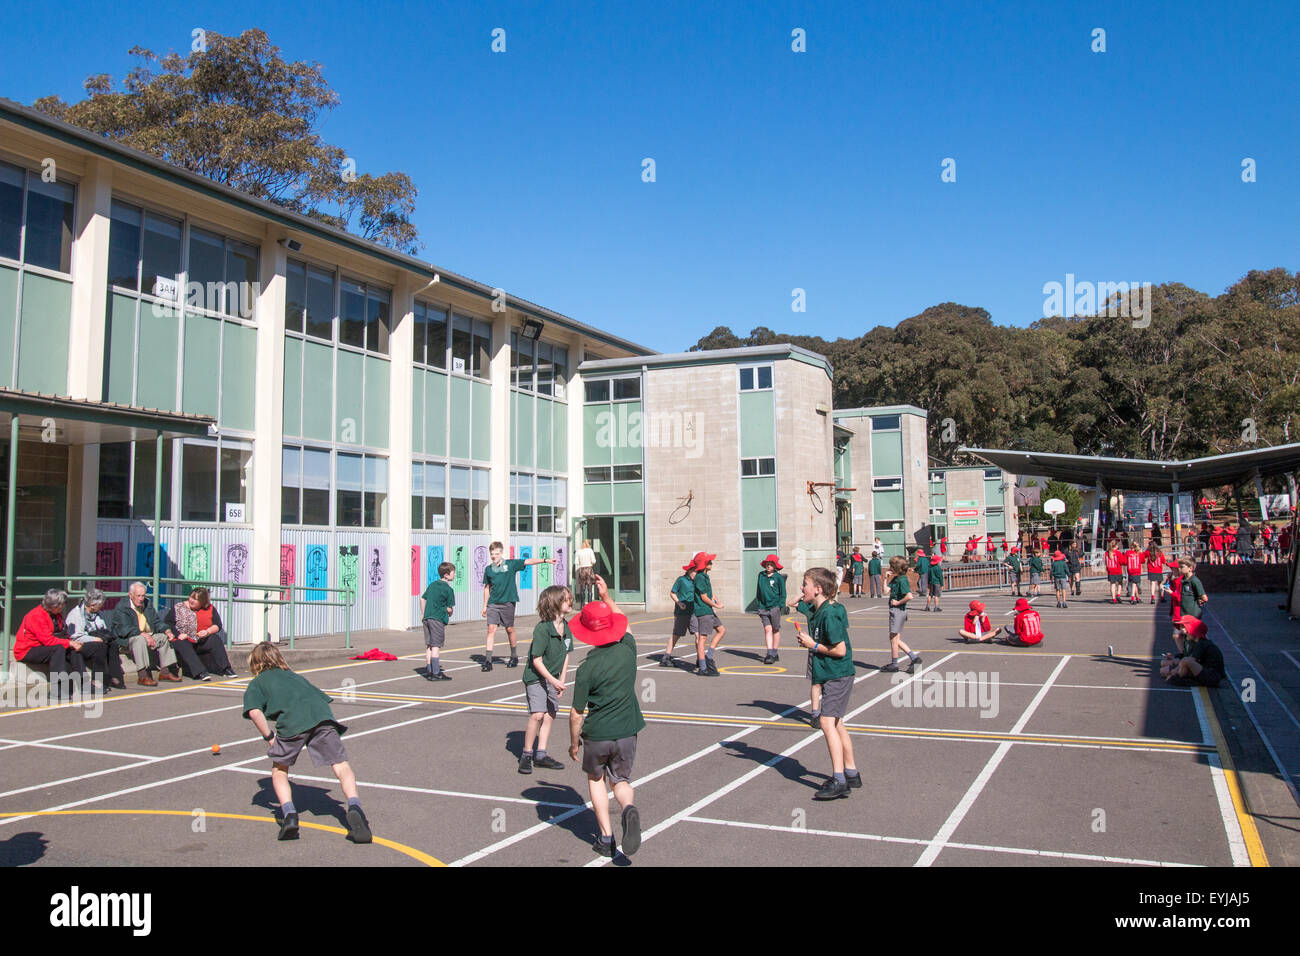 school children playing games in their primary school playground,Sydney,Australia - Stock Image